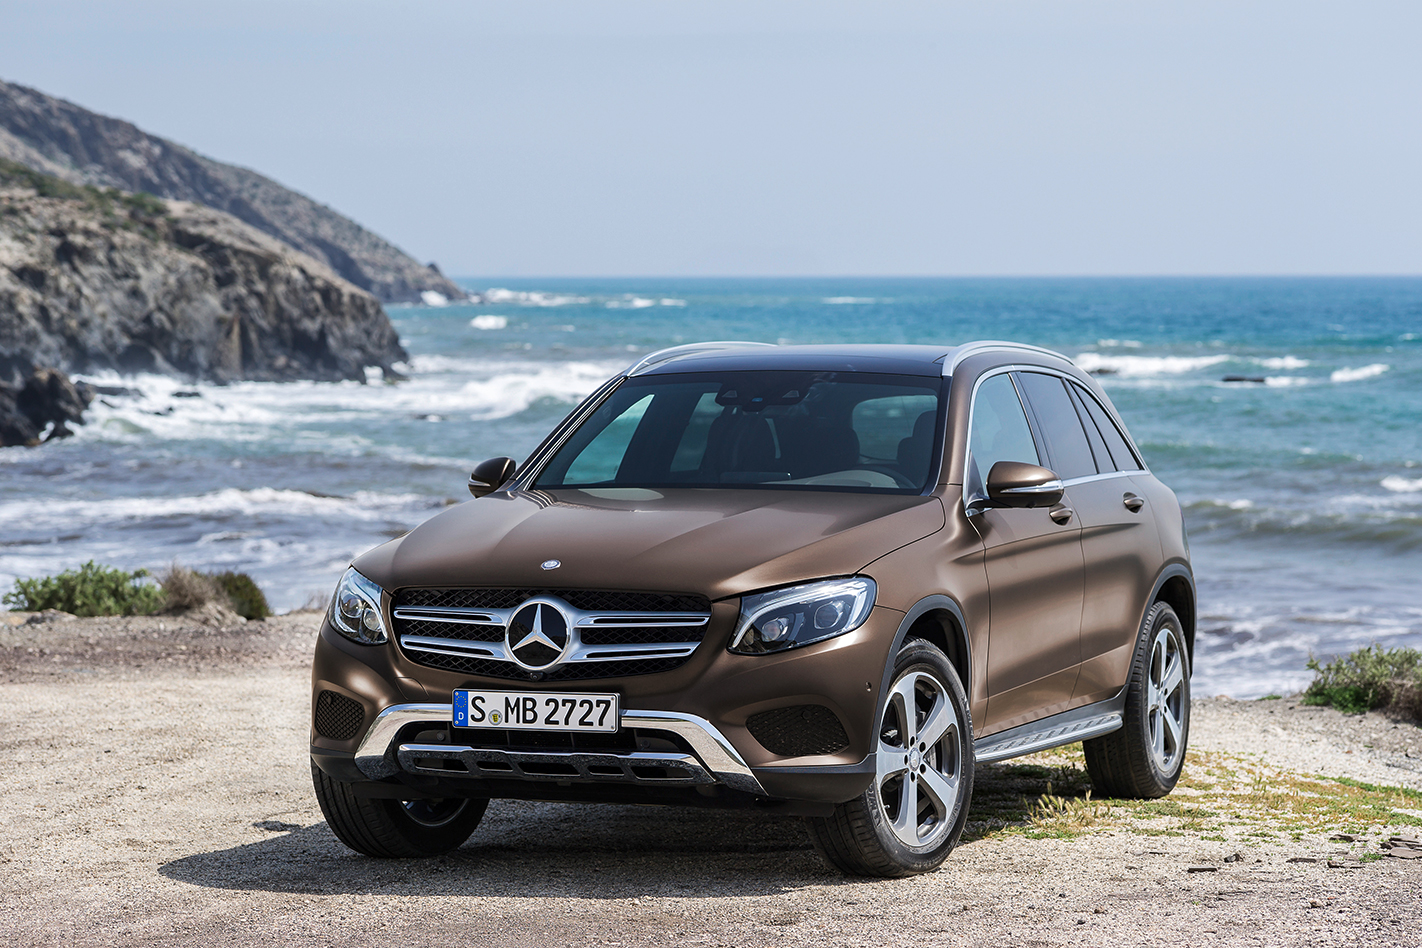 2015 Mercedes-Benz GLC review